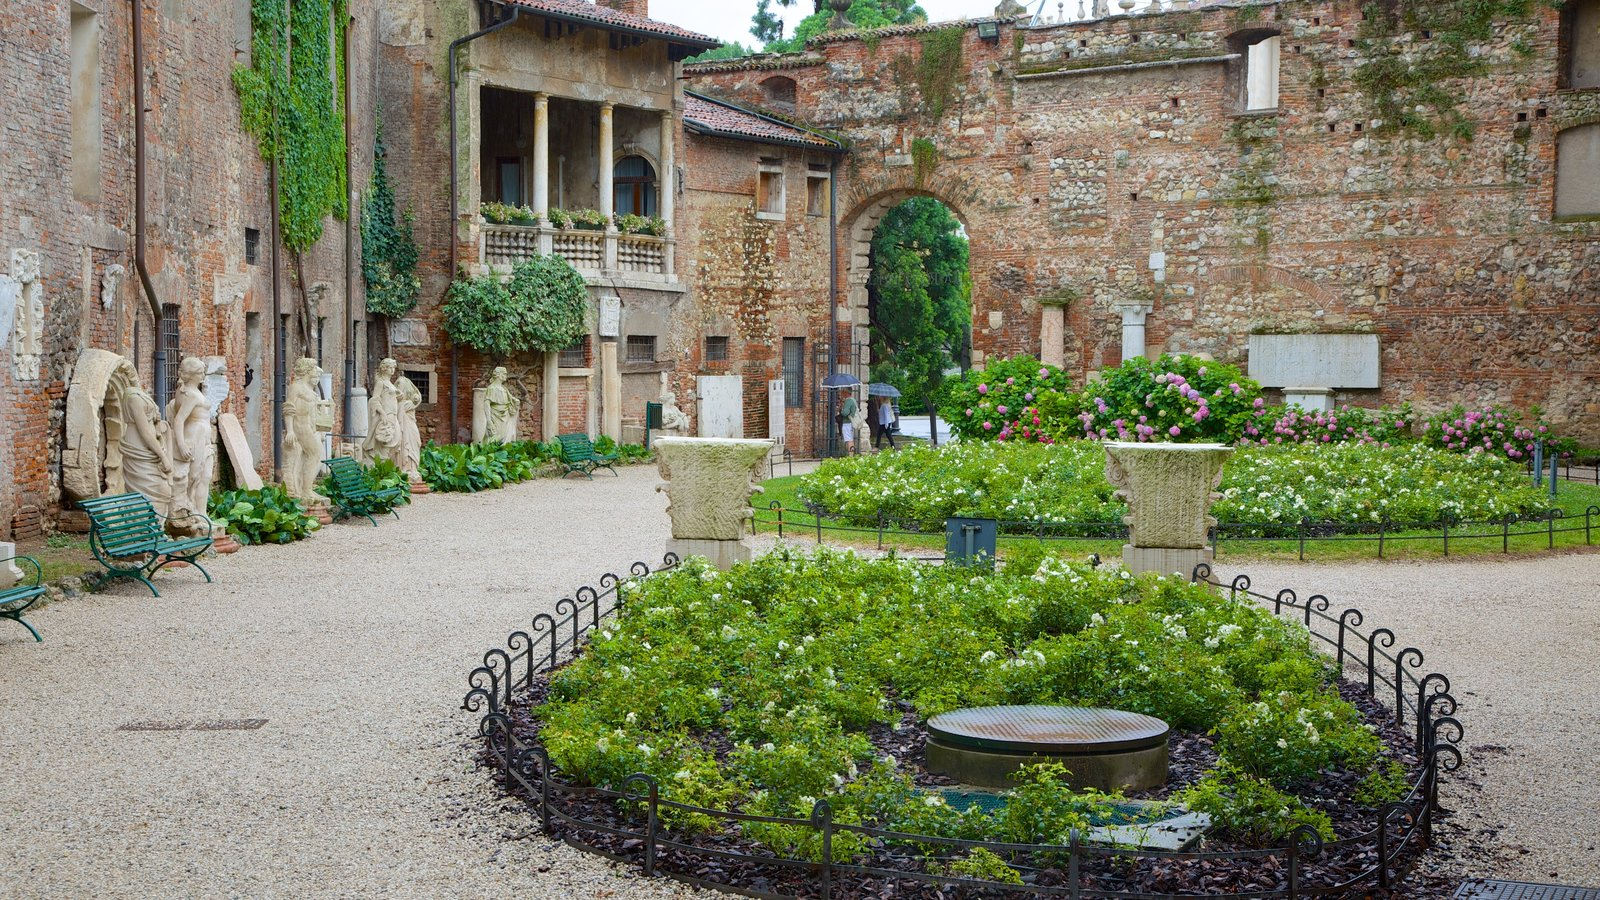 Vicenza which includes a garden and heritage elements